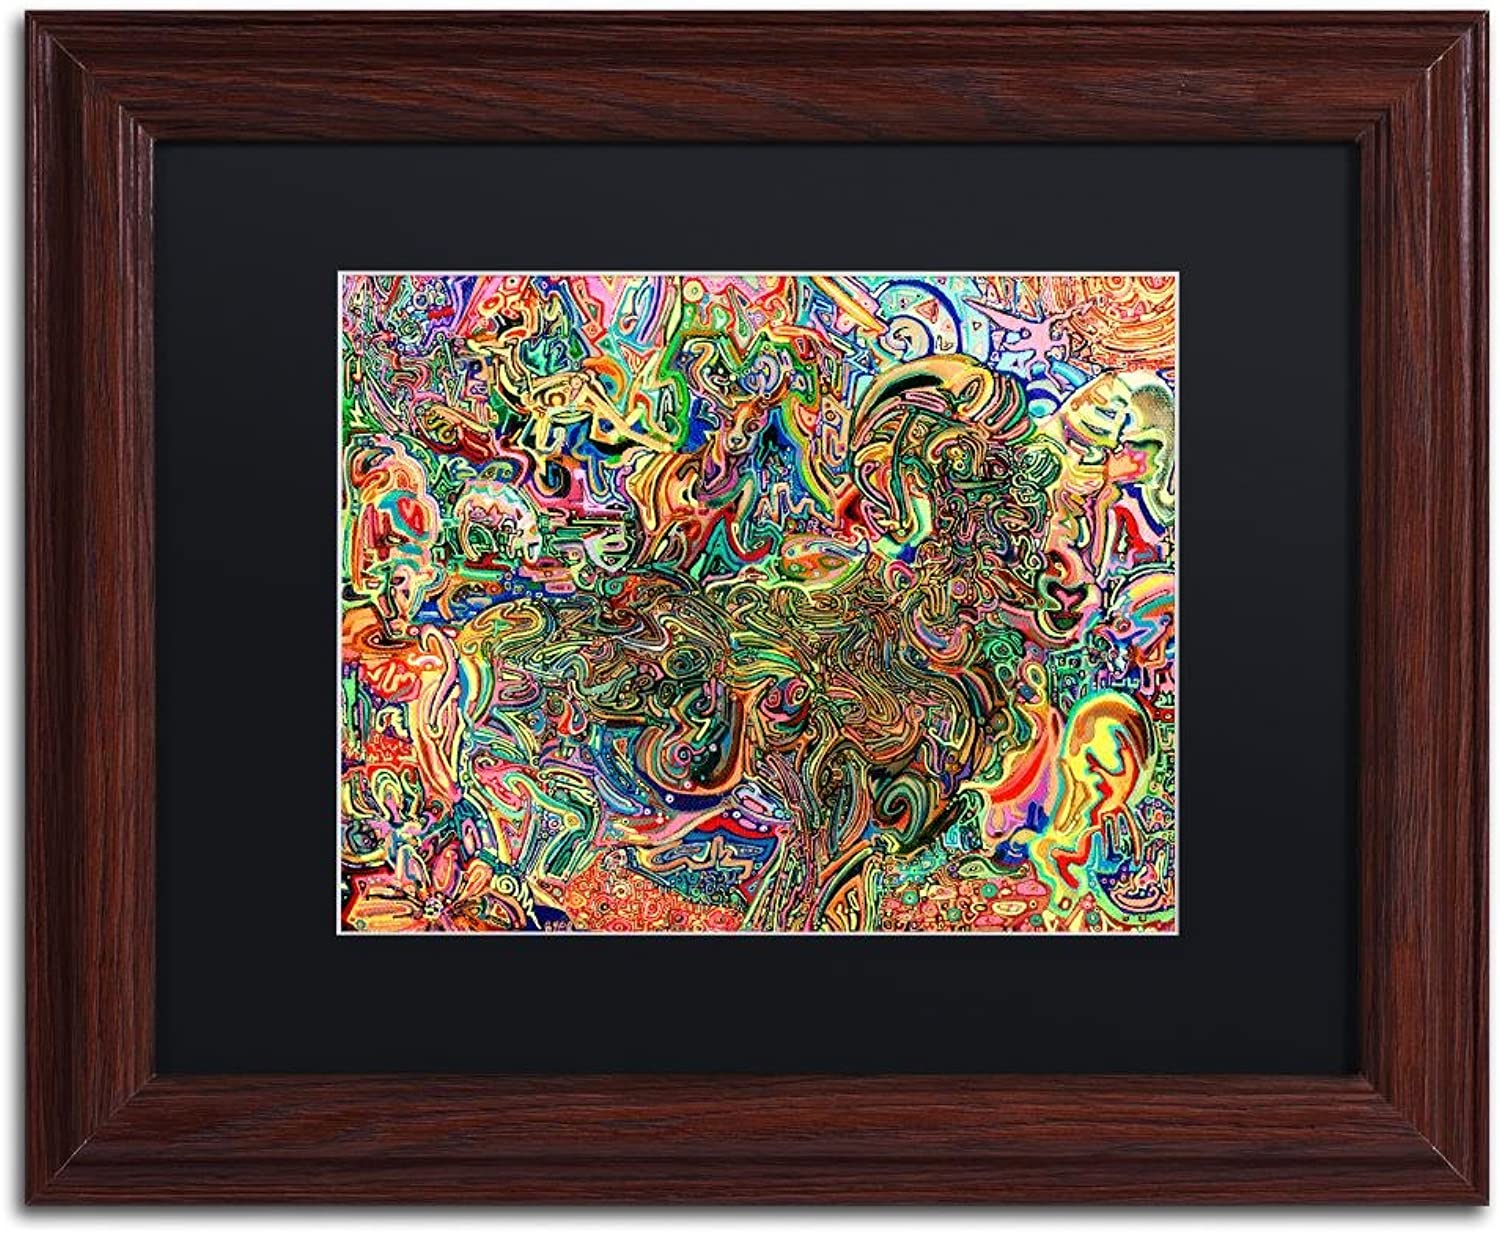 Trademark Fine Art Do Electric Sheep Dream of Androids by Josh Byer Wall Art Black Matte, Wood Frame 11x14